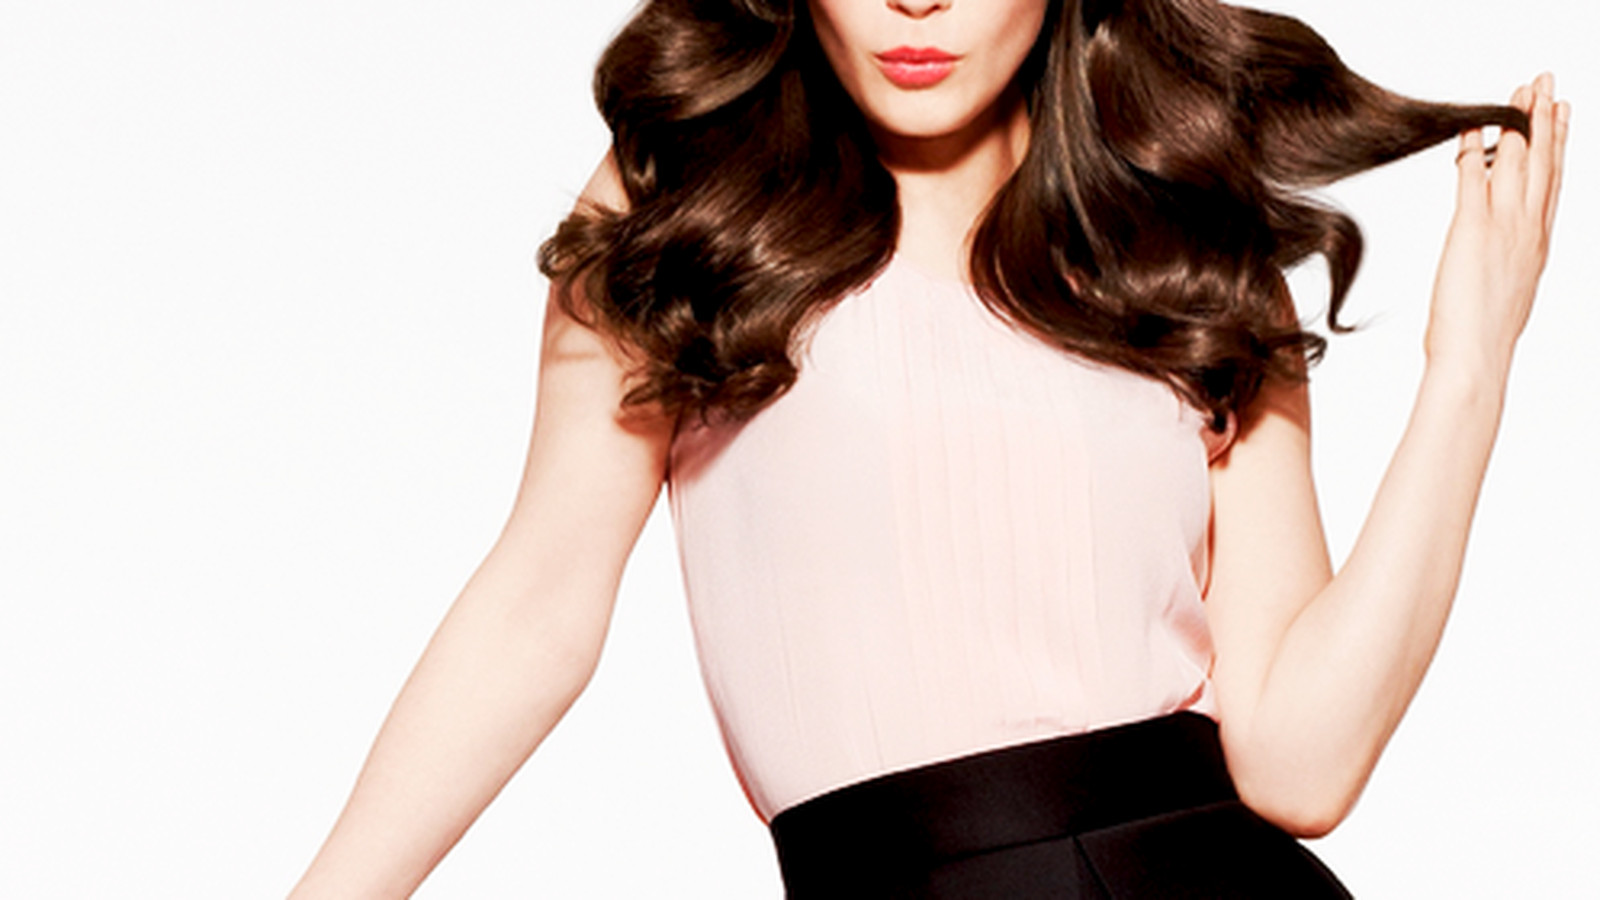 Zooey Deschanel for Pantene; Neon Nail Polish Is Illegal; Butter London launches Lip Gloss